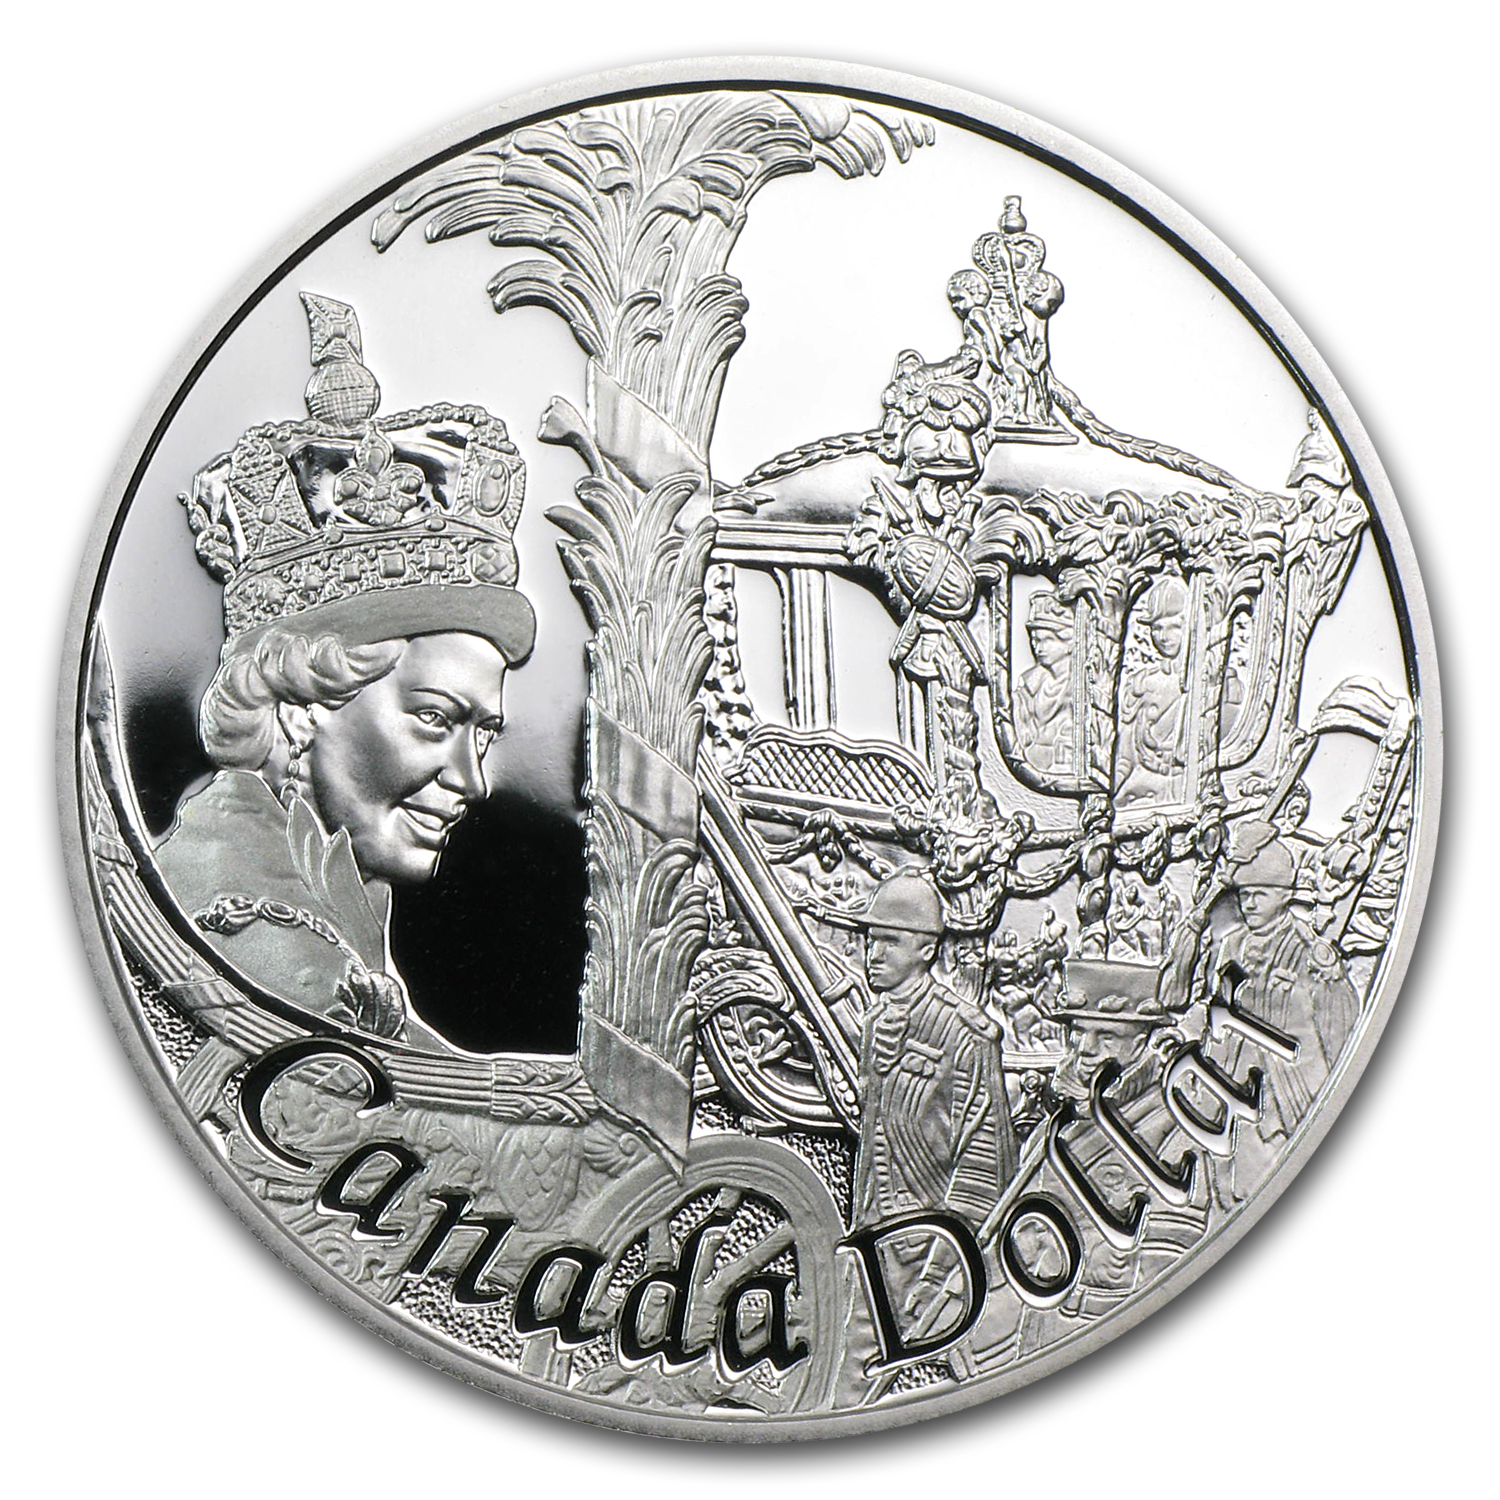 2002 Canada Silver $1 The Queen's Golden Jubilee Proof